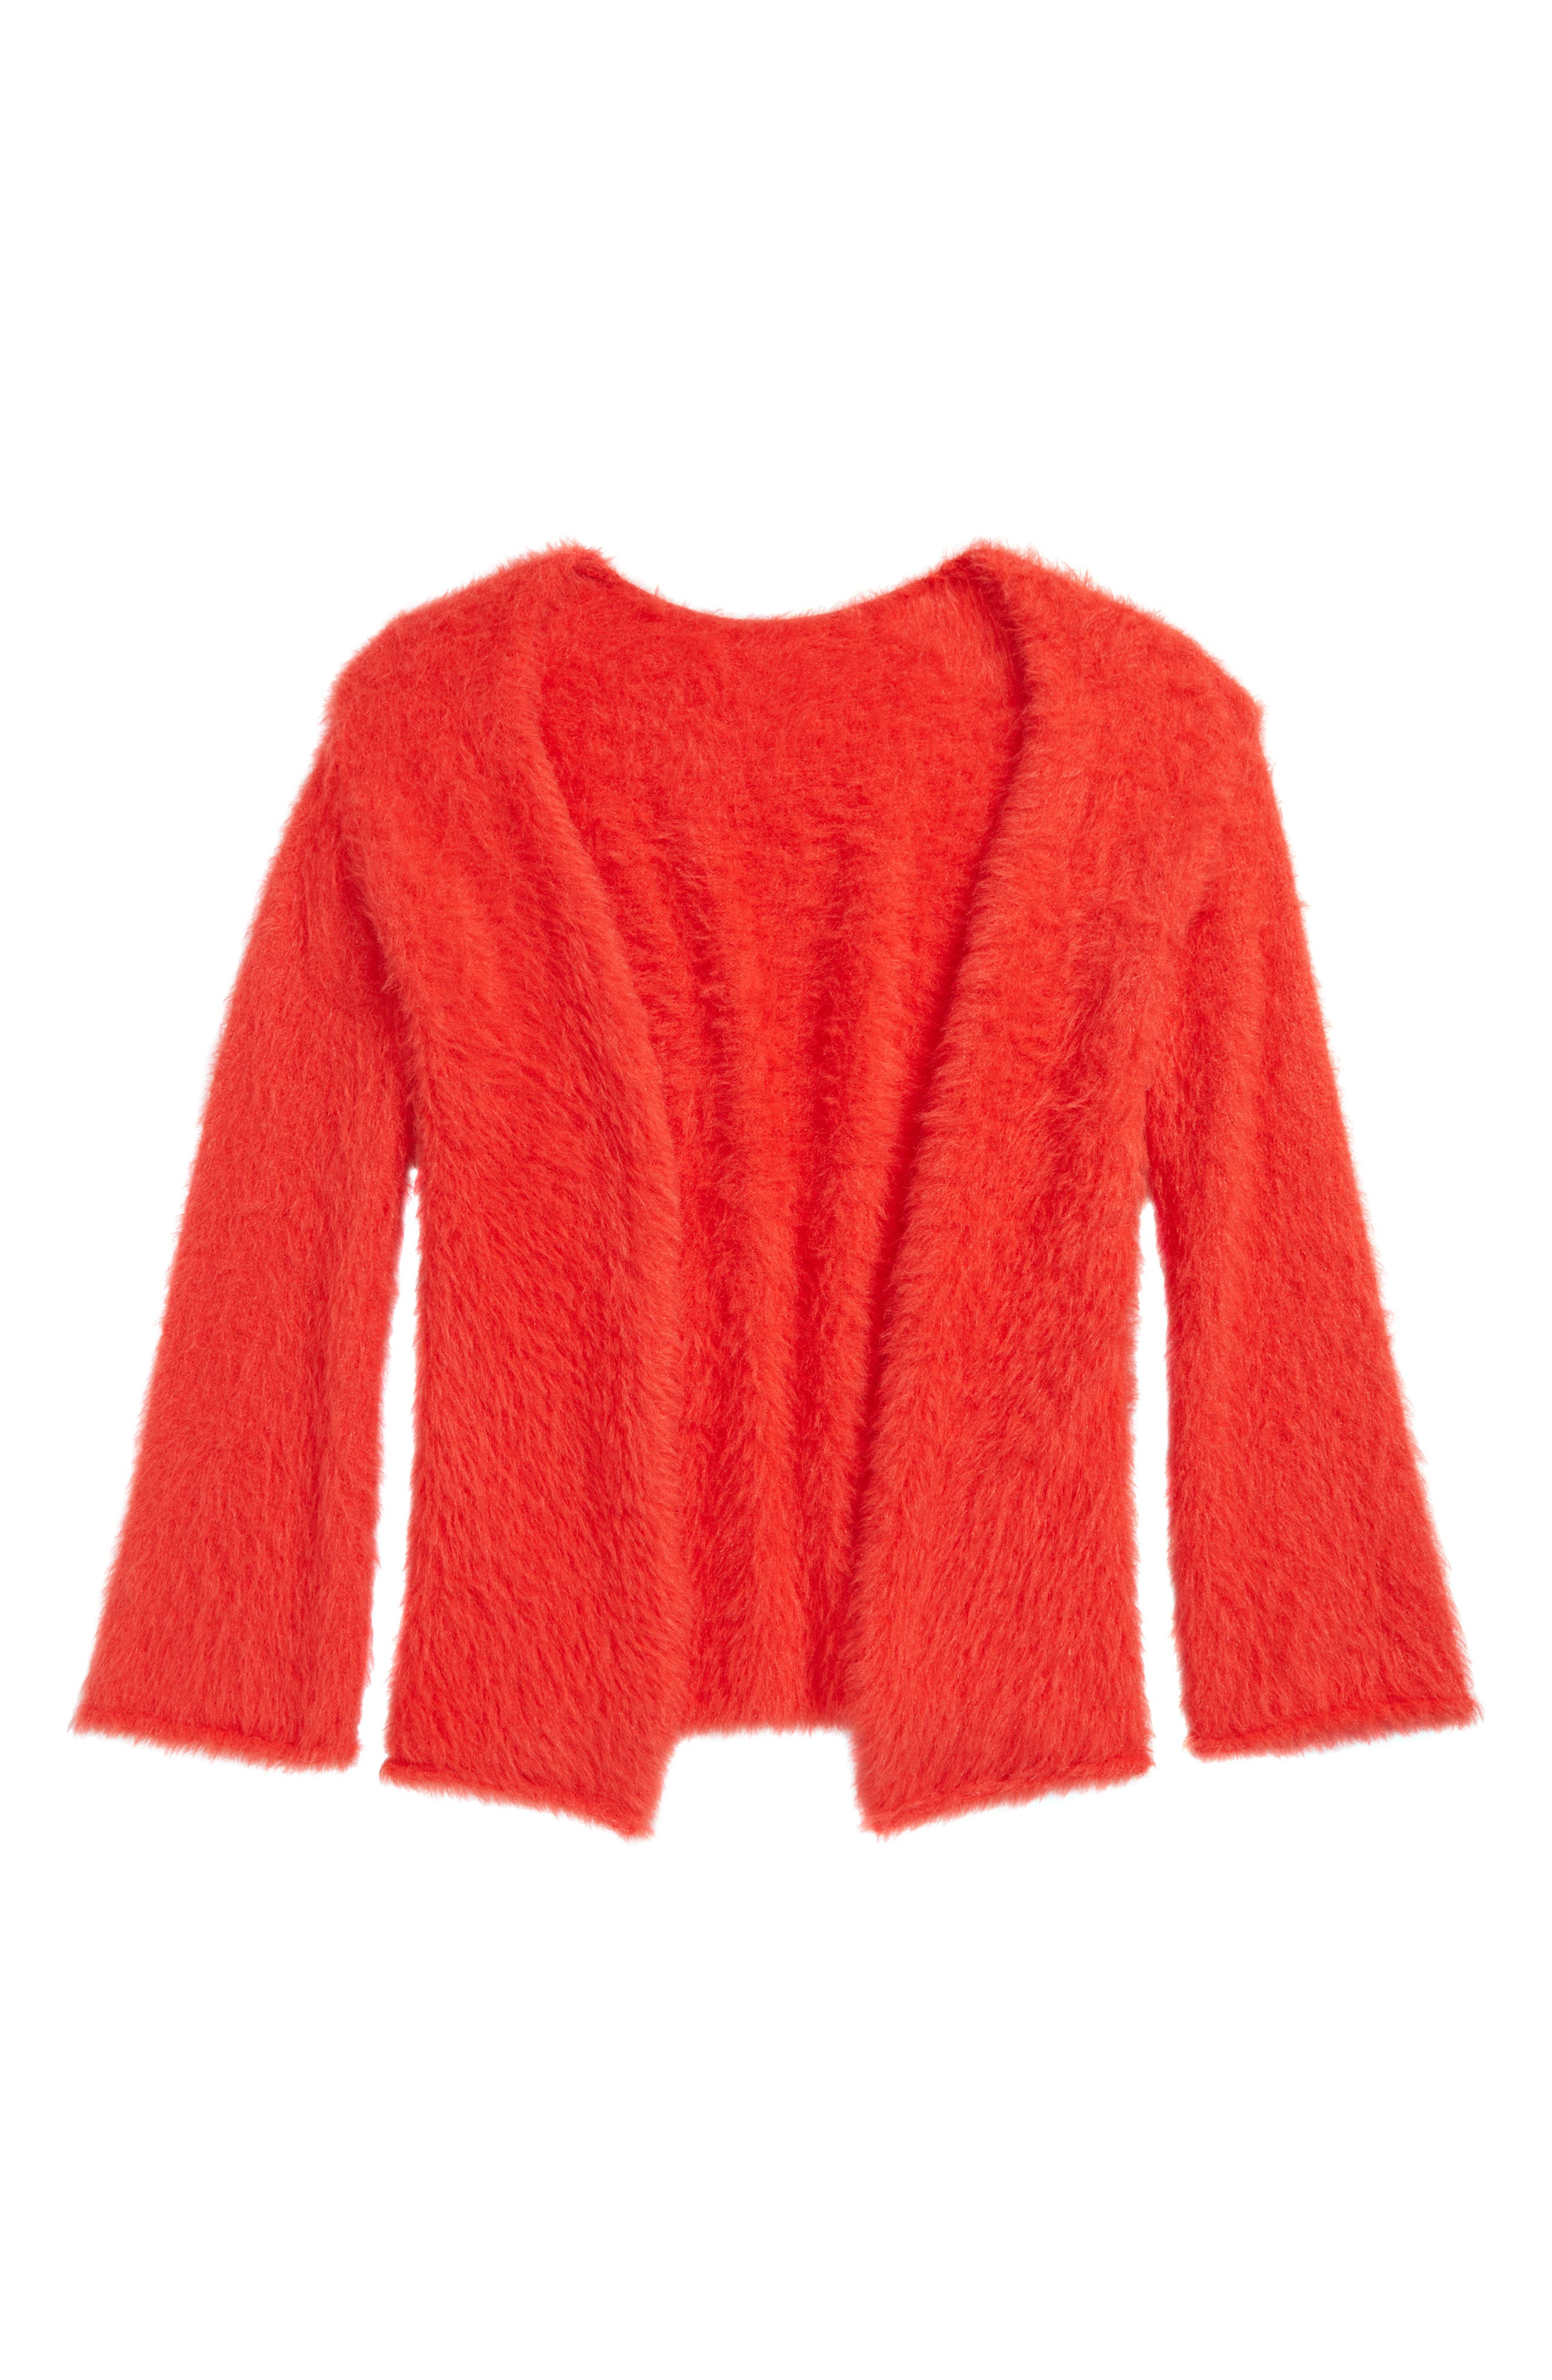 Fuzzy Cardigan,                             Main thumbnail 1, color,                             RED TOMATO